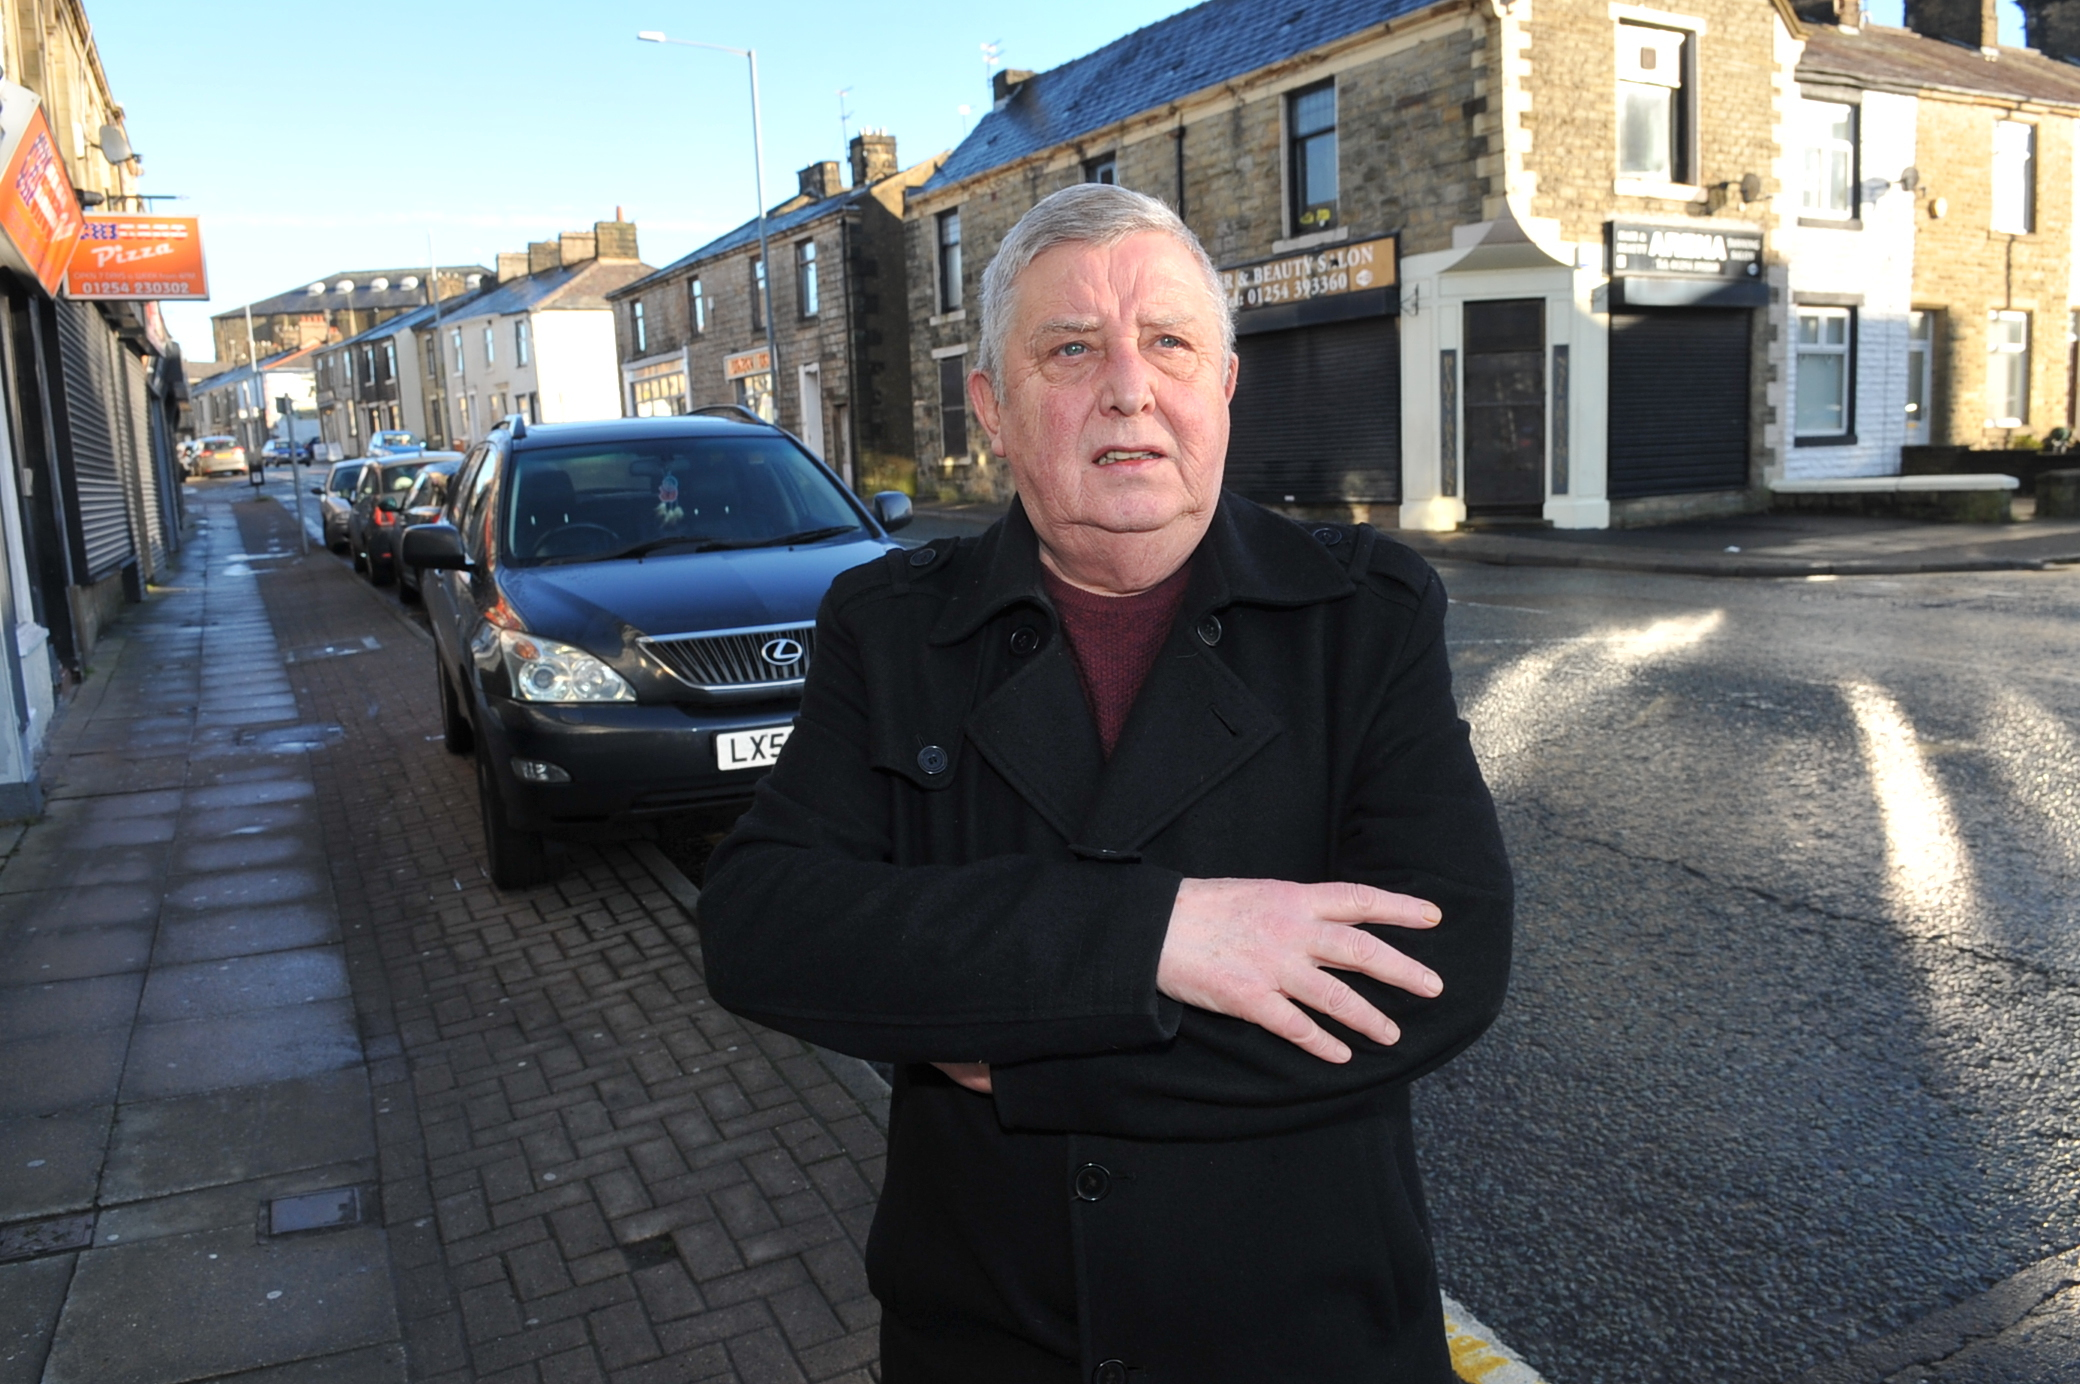 Peter Britcliffe pictured at junstion of Rhyddings Street and Union Road, Oswaldtwistle, complaining about parking/road issues...Images by Steve Holt, Sunday January 29 2017..